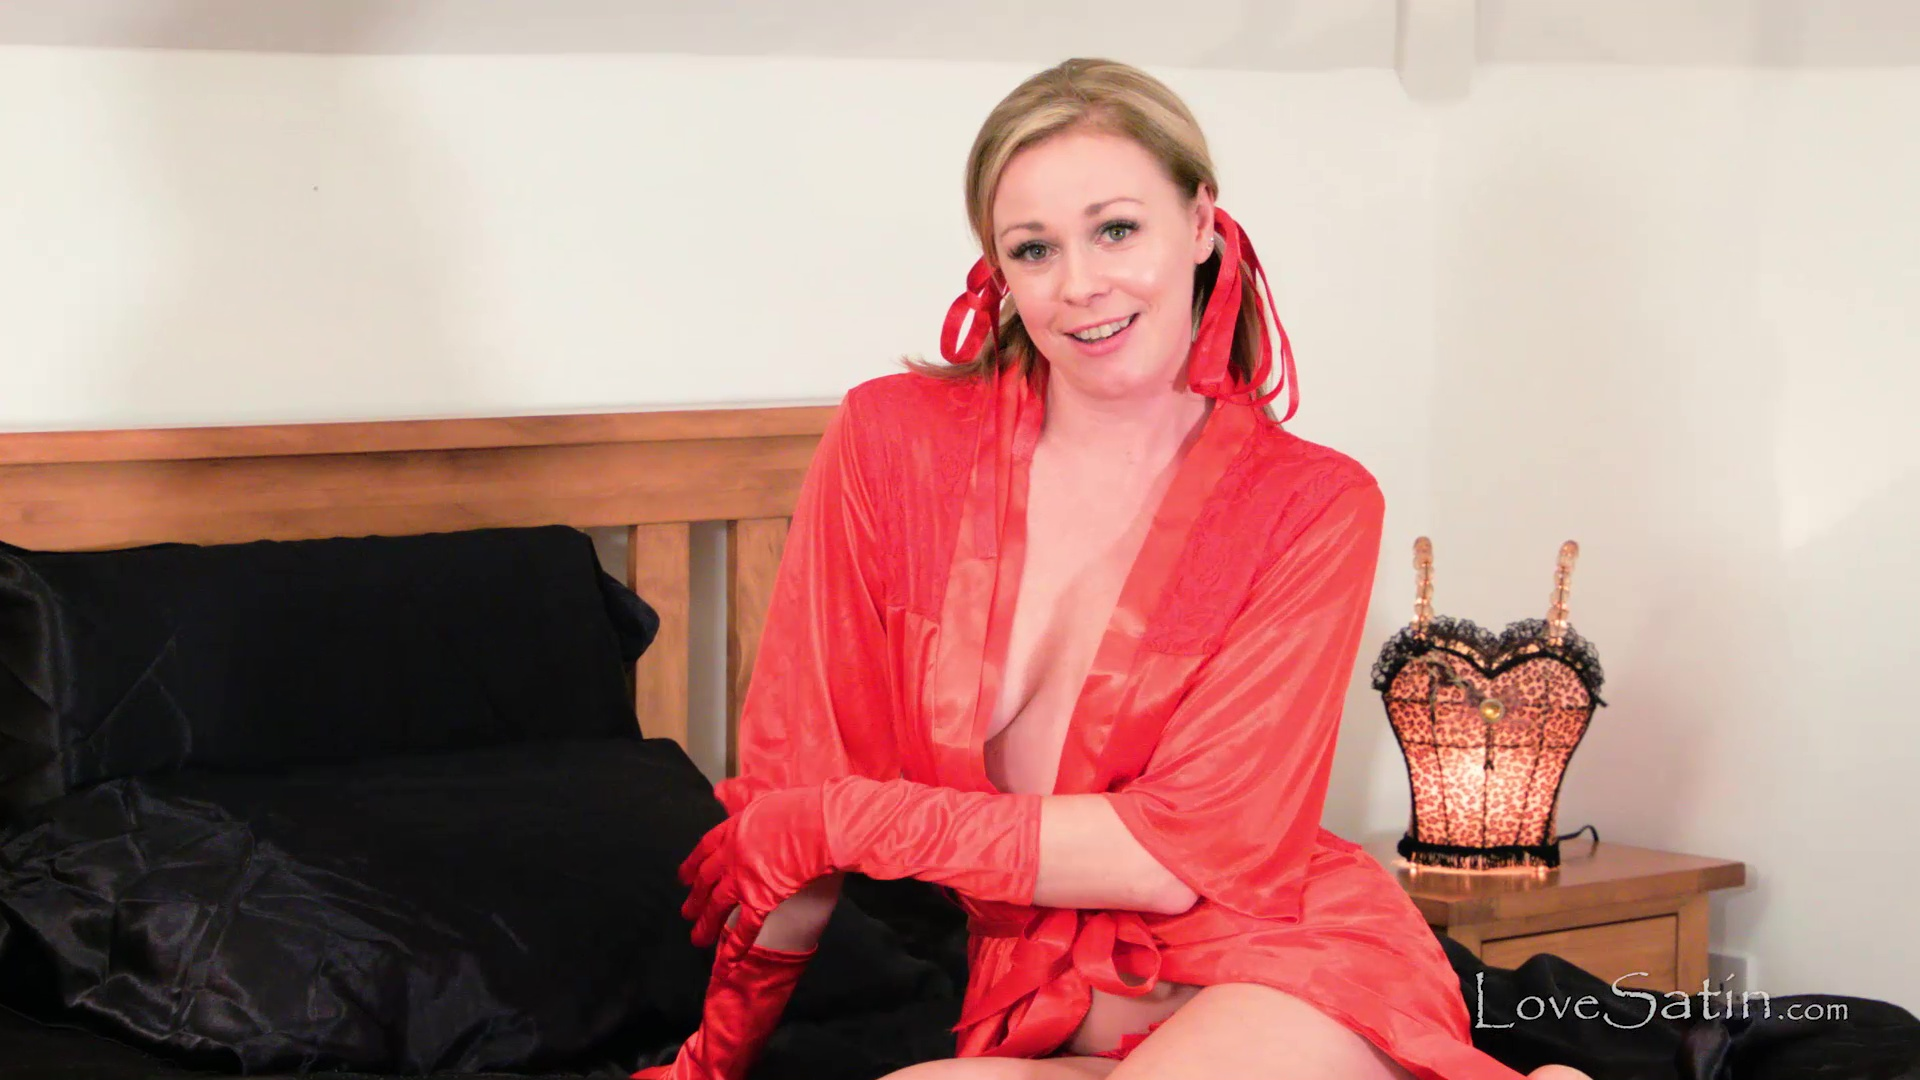 content/Lucy/Red Satin Lingerie JOI - Lucy/1.jpg